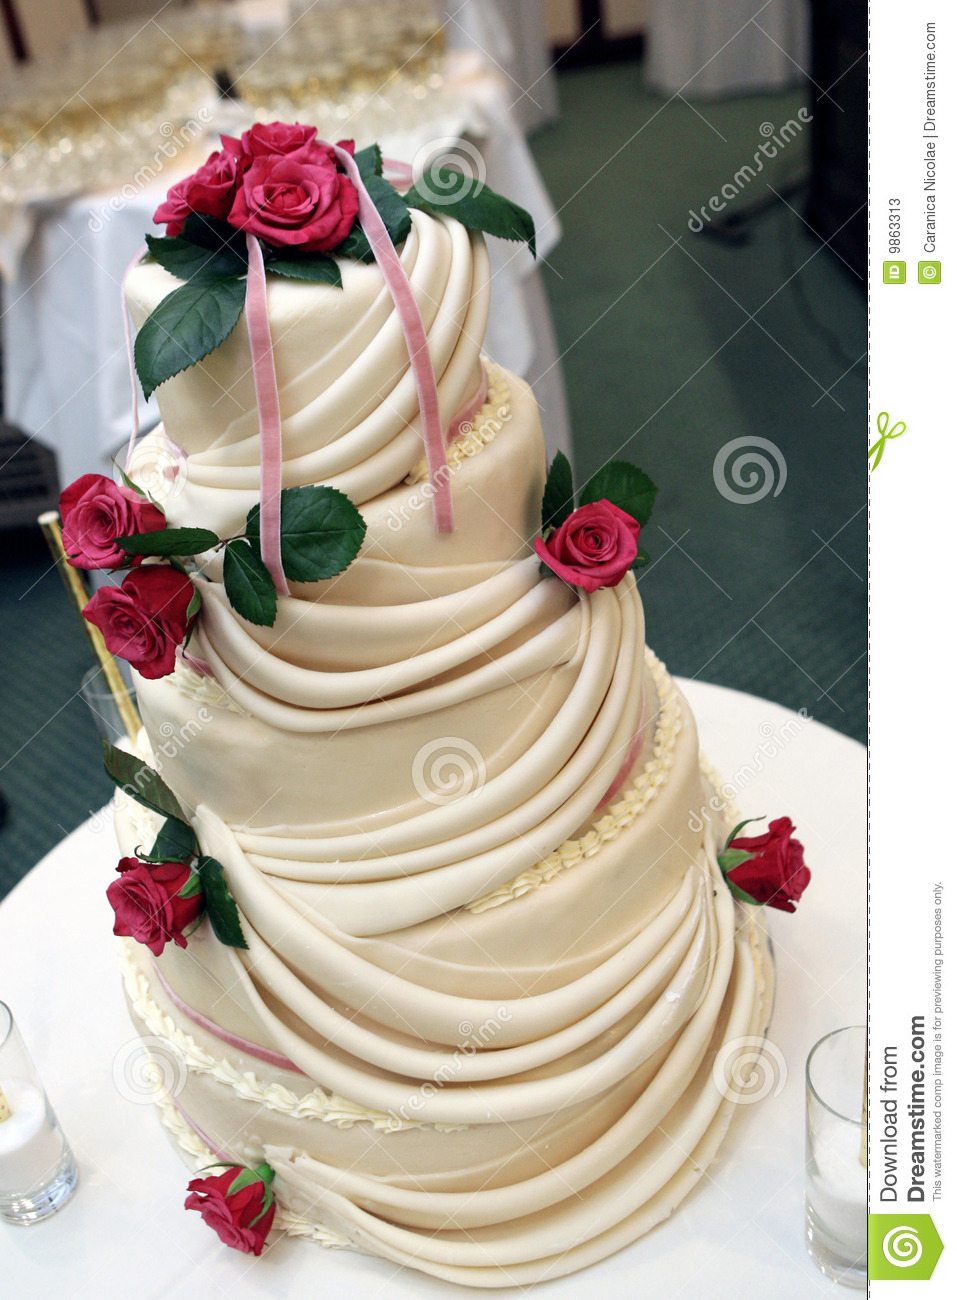 Raw Wedding Cake